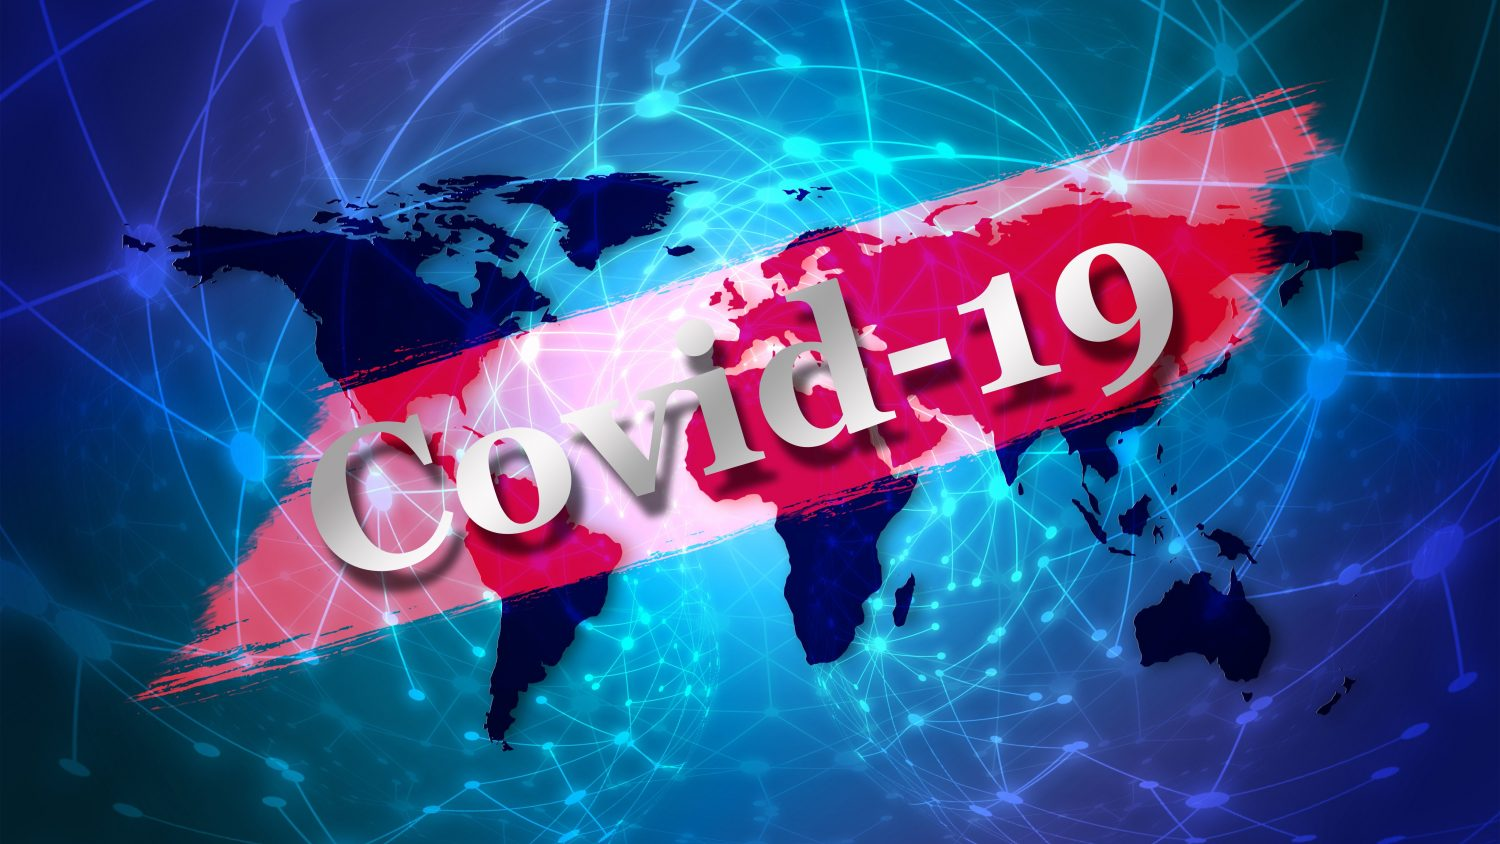 Updated COVID-19 Information